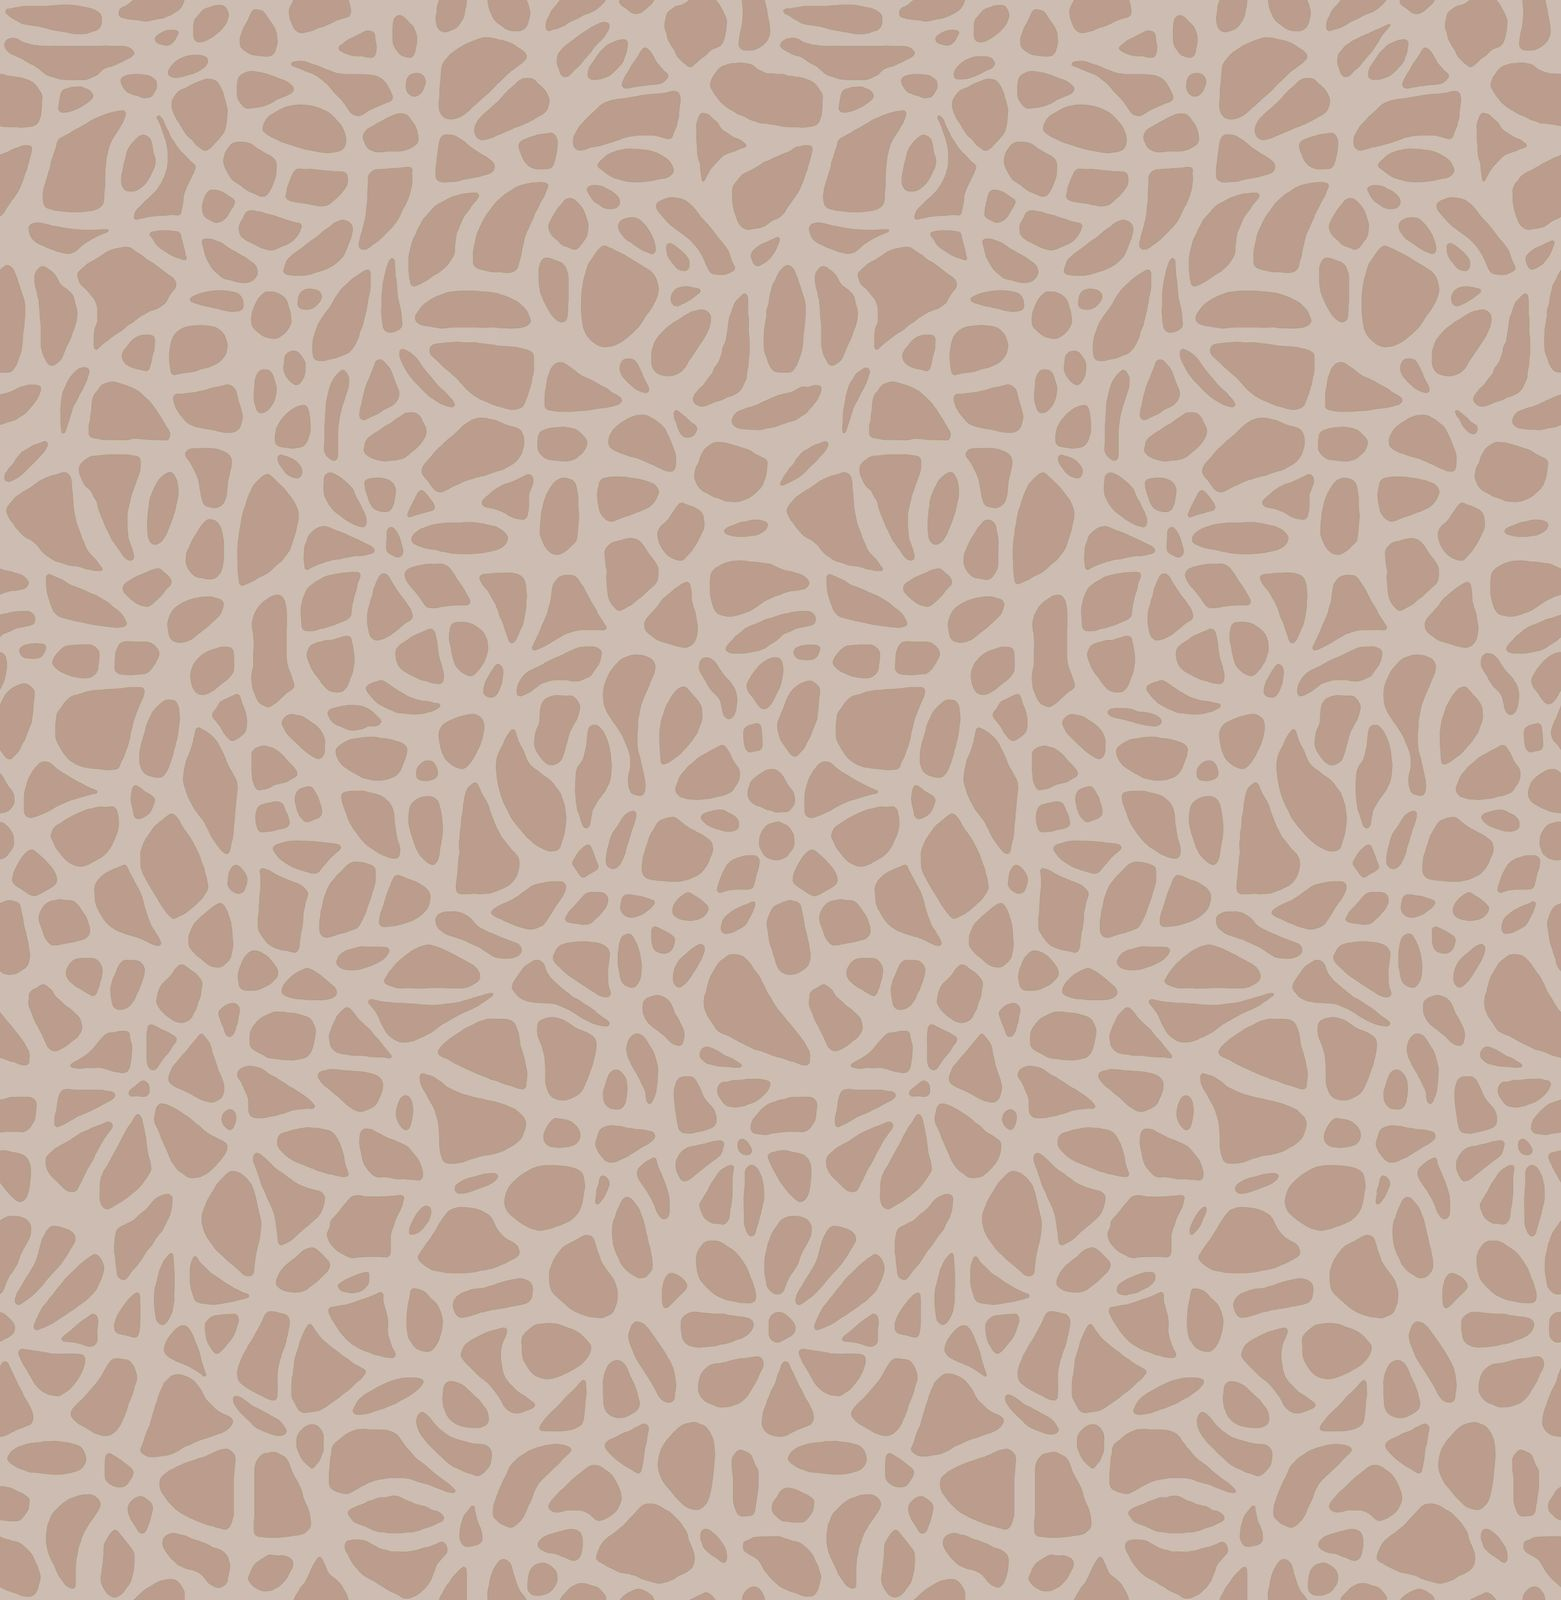 Tapetti 1838 Wallcoverings Pebble vaaleanpunainen 0,52x10,05 m